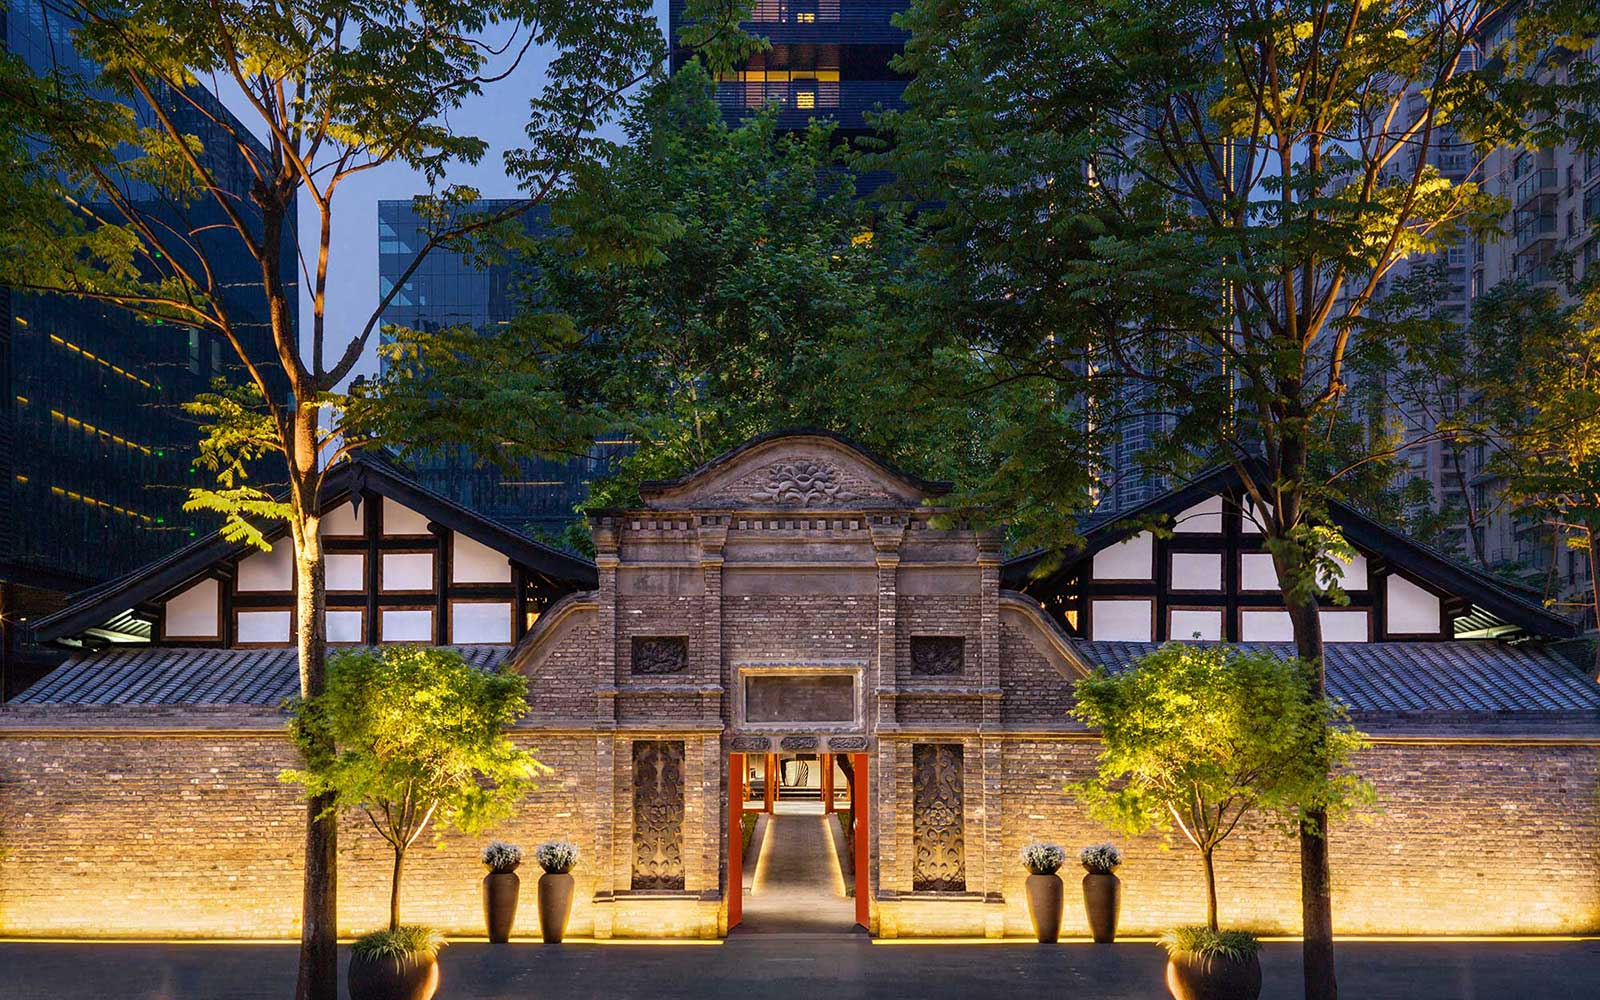 Temple House Hotel in Asia